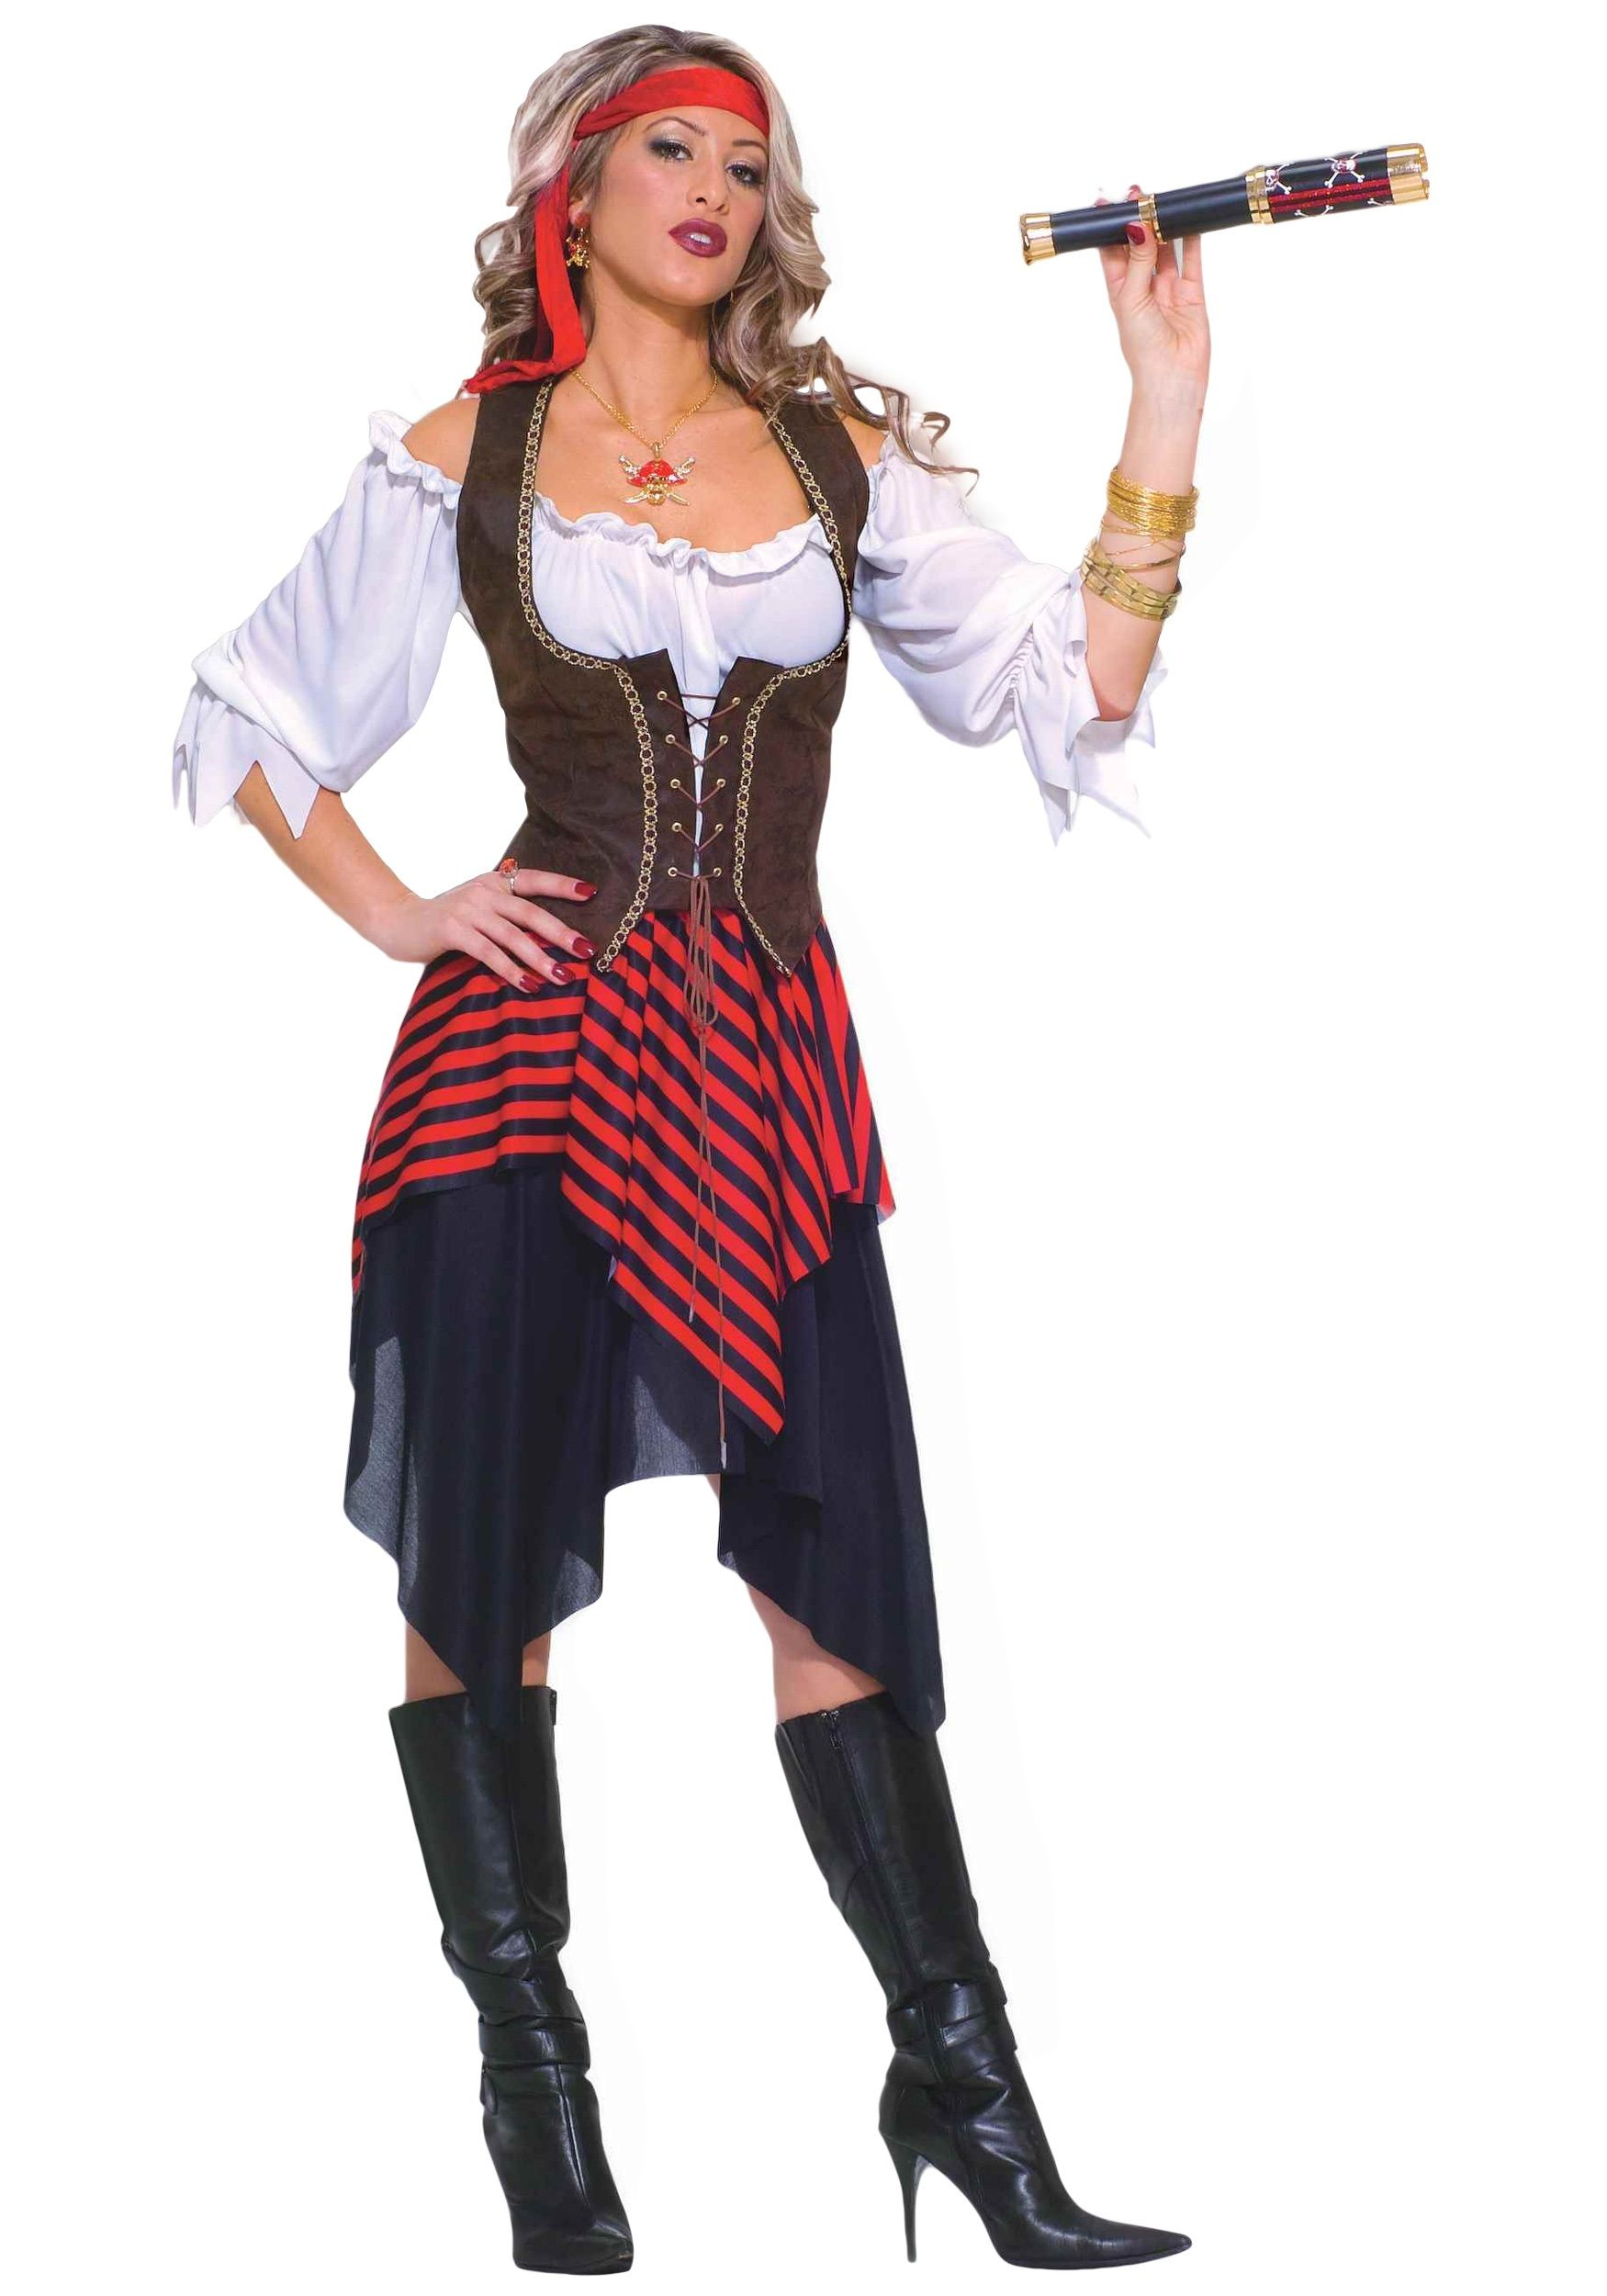 It's time to buck up! This Sweet Buccaneer Costume is a